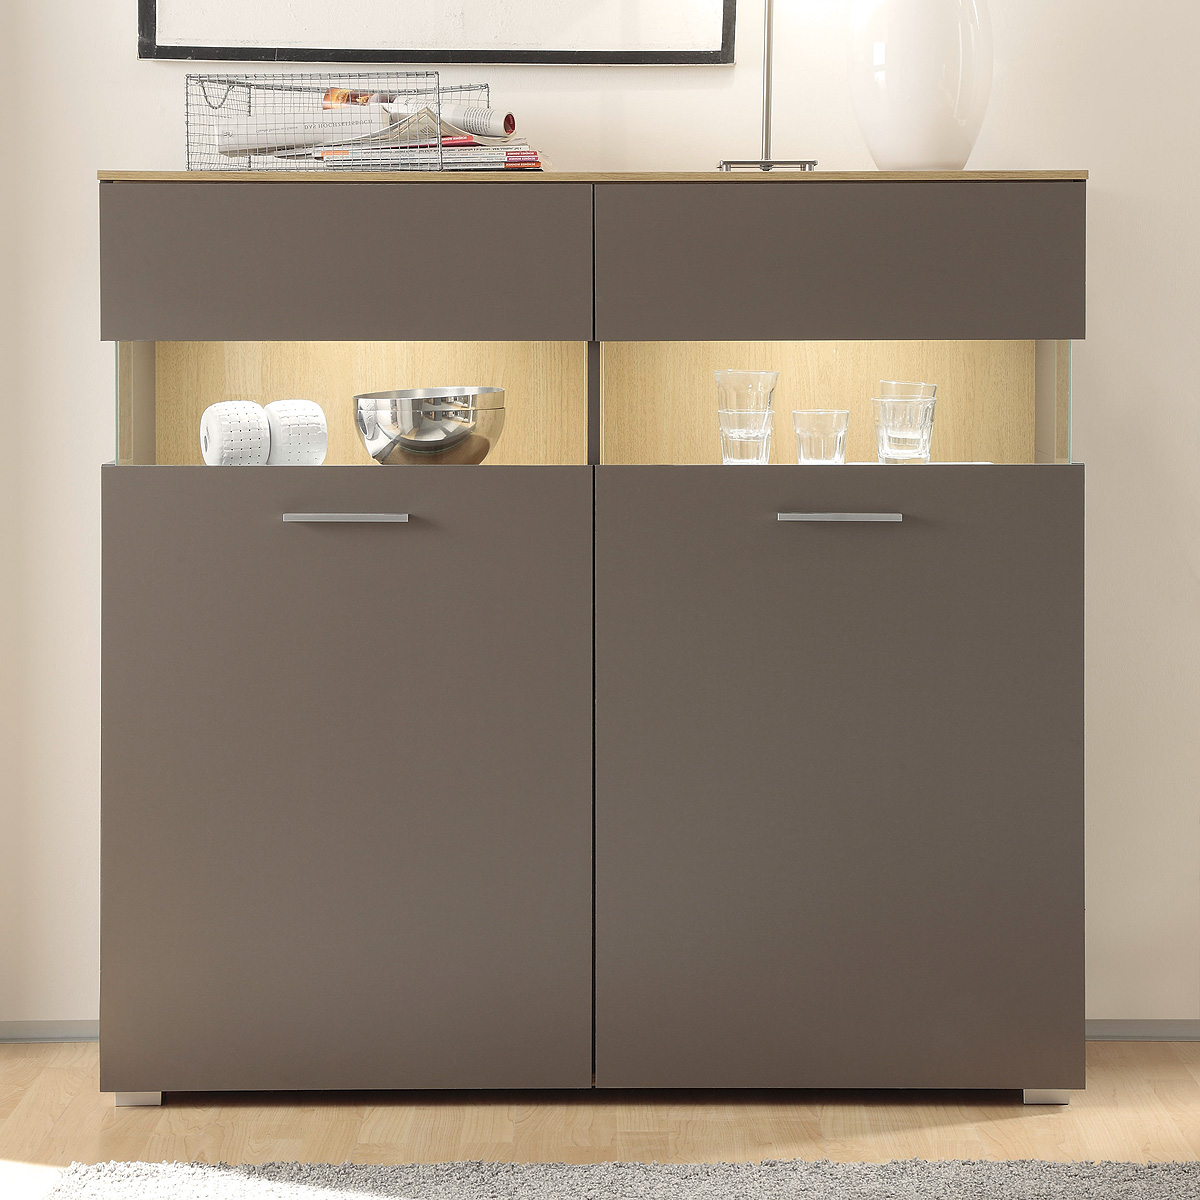 kommode 2 xero highboard schrank vitrine in grau und. Black Bedroom Furniture Sets. Home Design Ideas